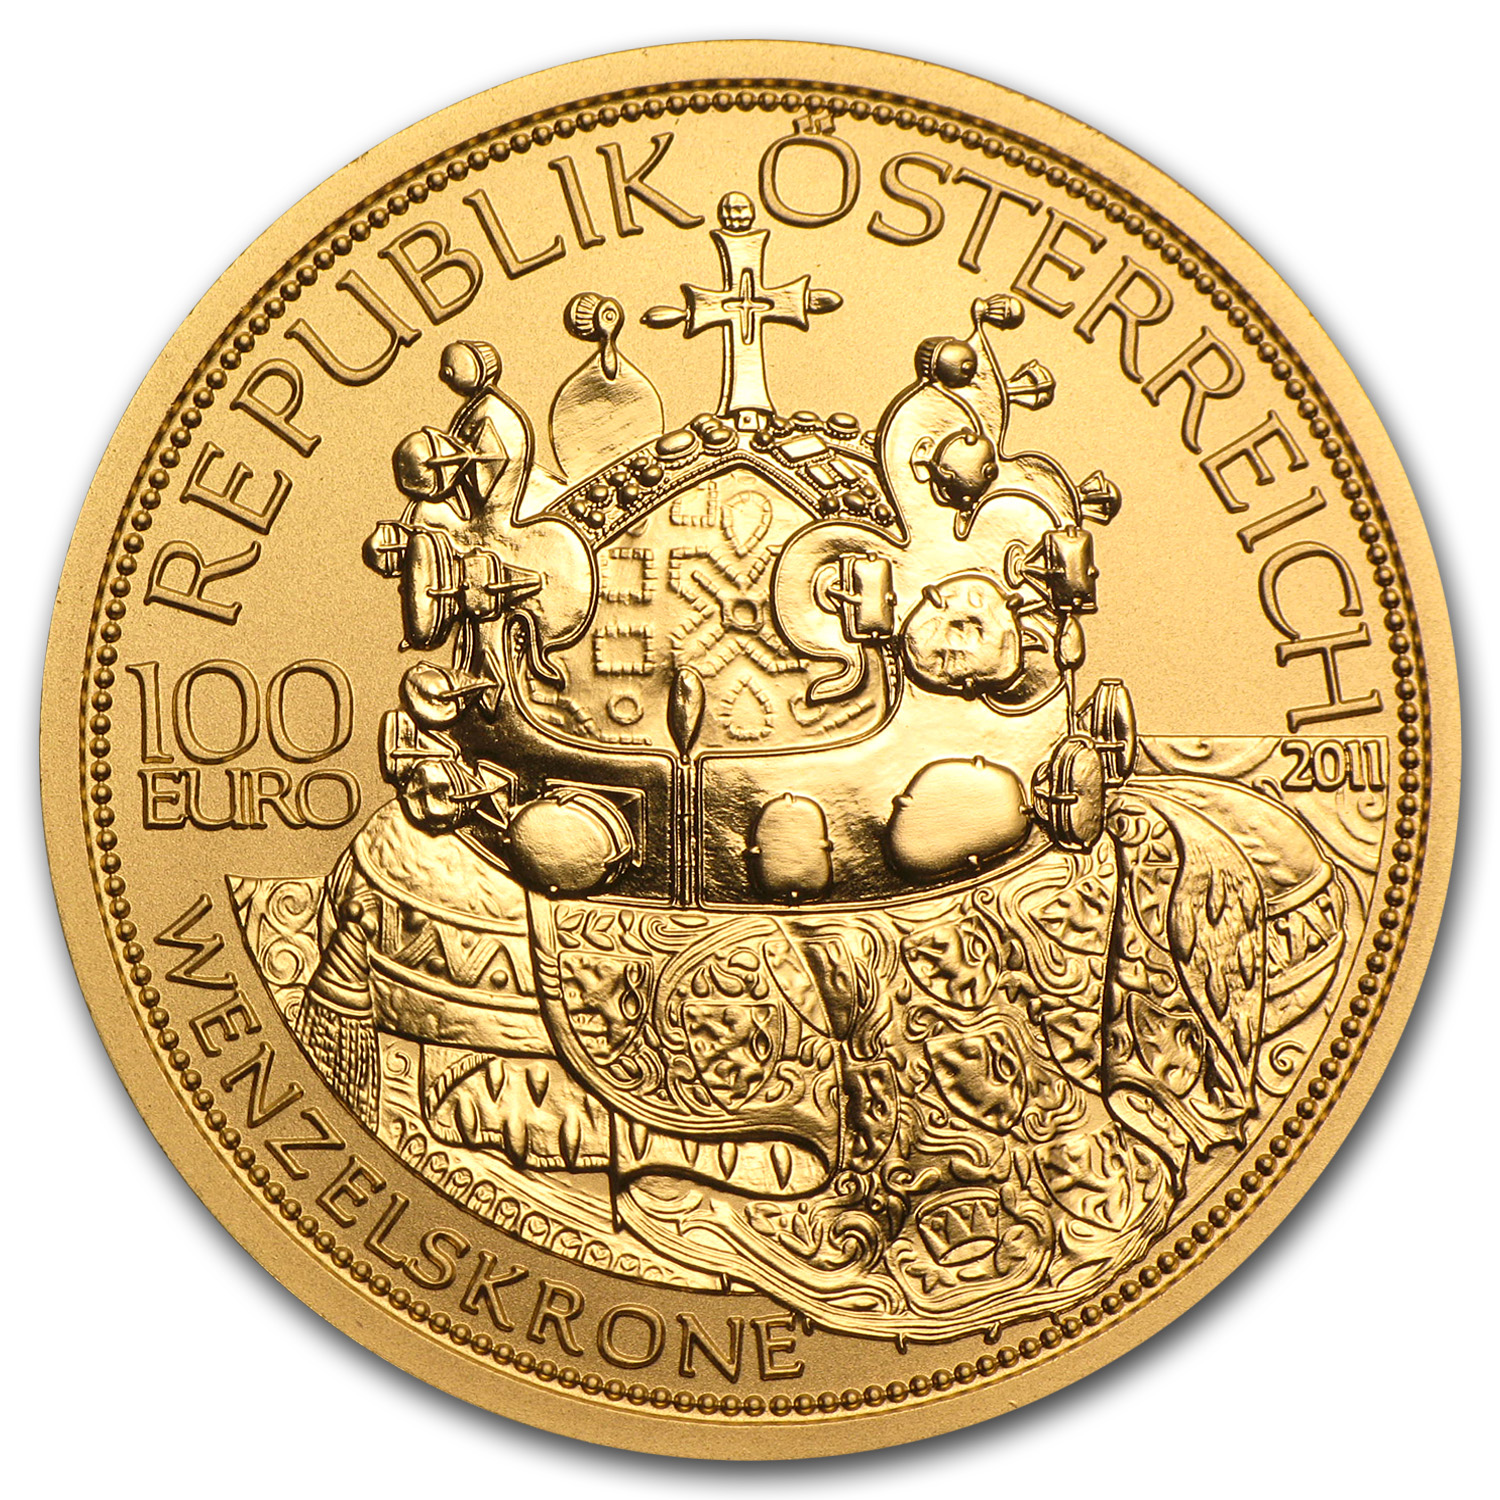 2011 The Crown of St Wenceslas 100 Euro Gold Coin AGW 0.5072